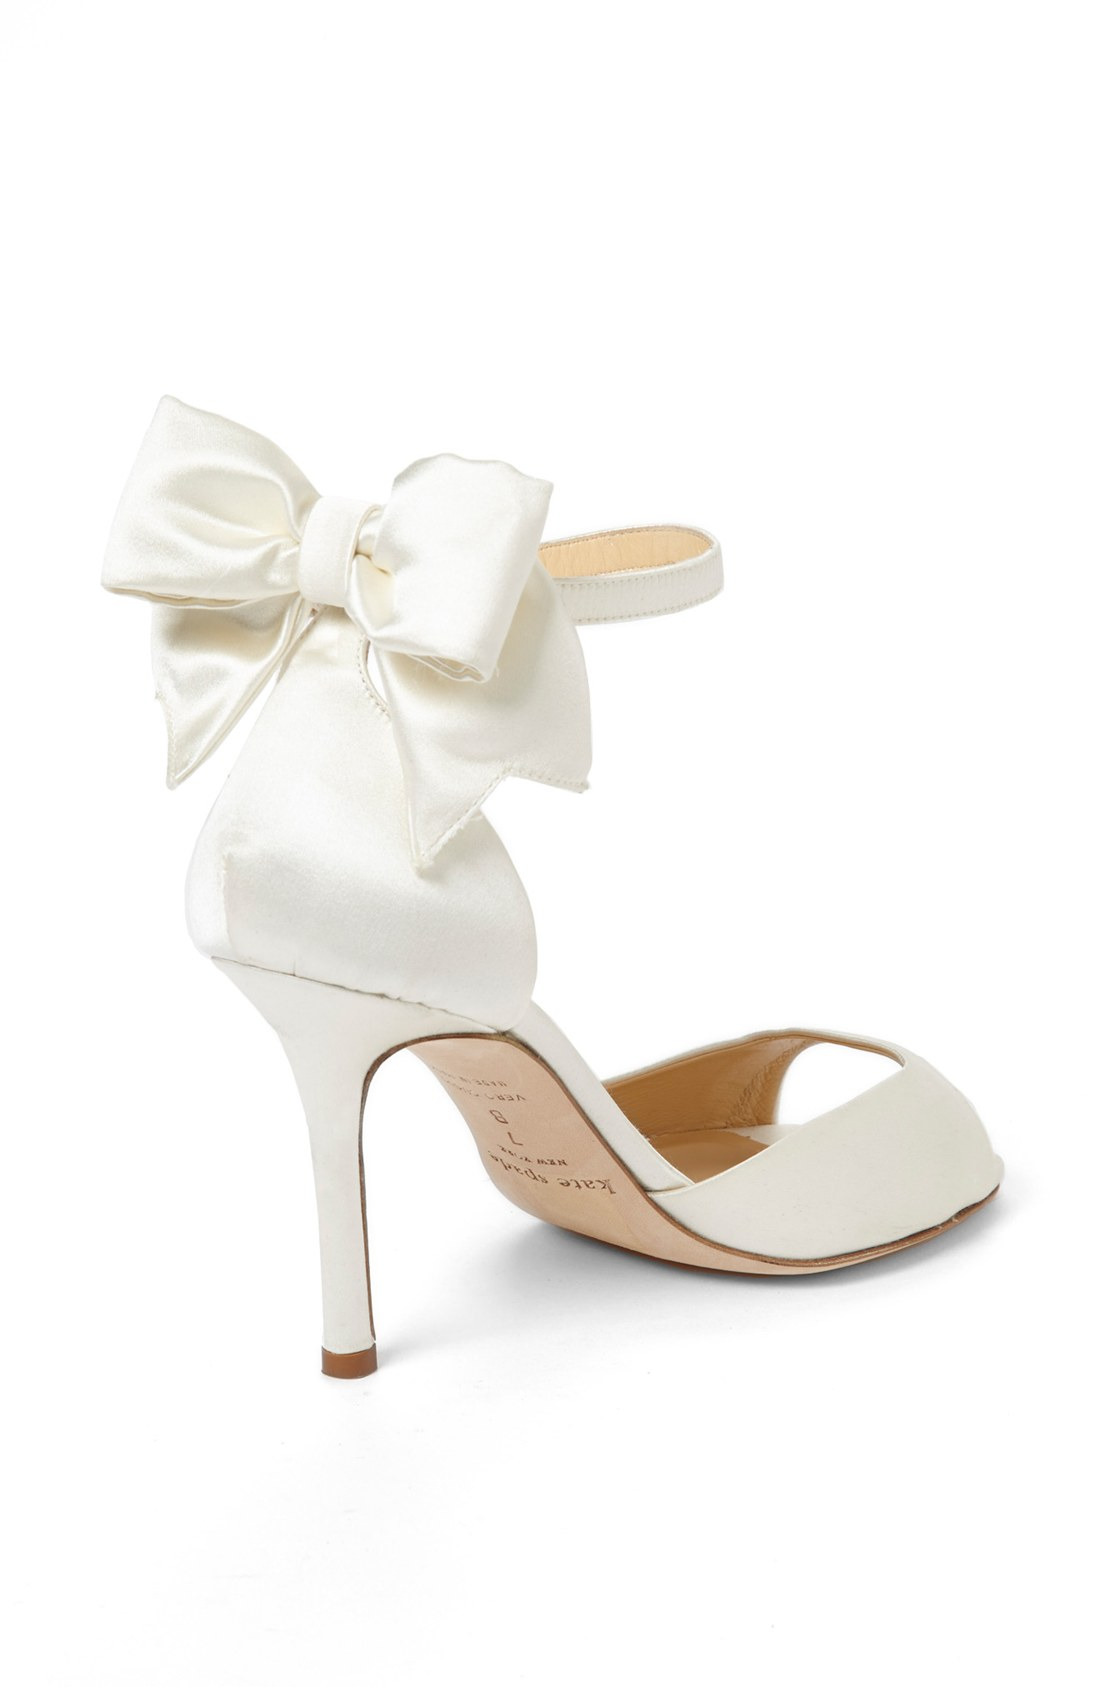 79a328f4c5 Summer Wedding Style with KATE SPADE White Izzie Sandal & ANN TAYLOR White  Jackie Bow Sandals